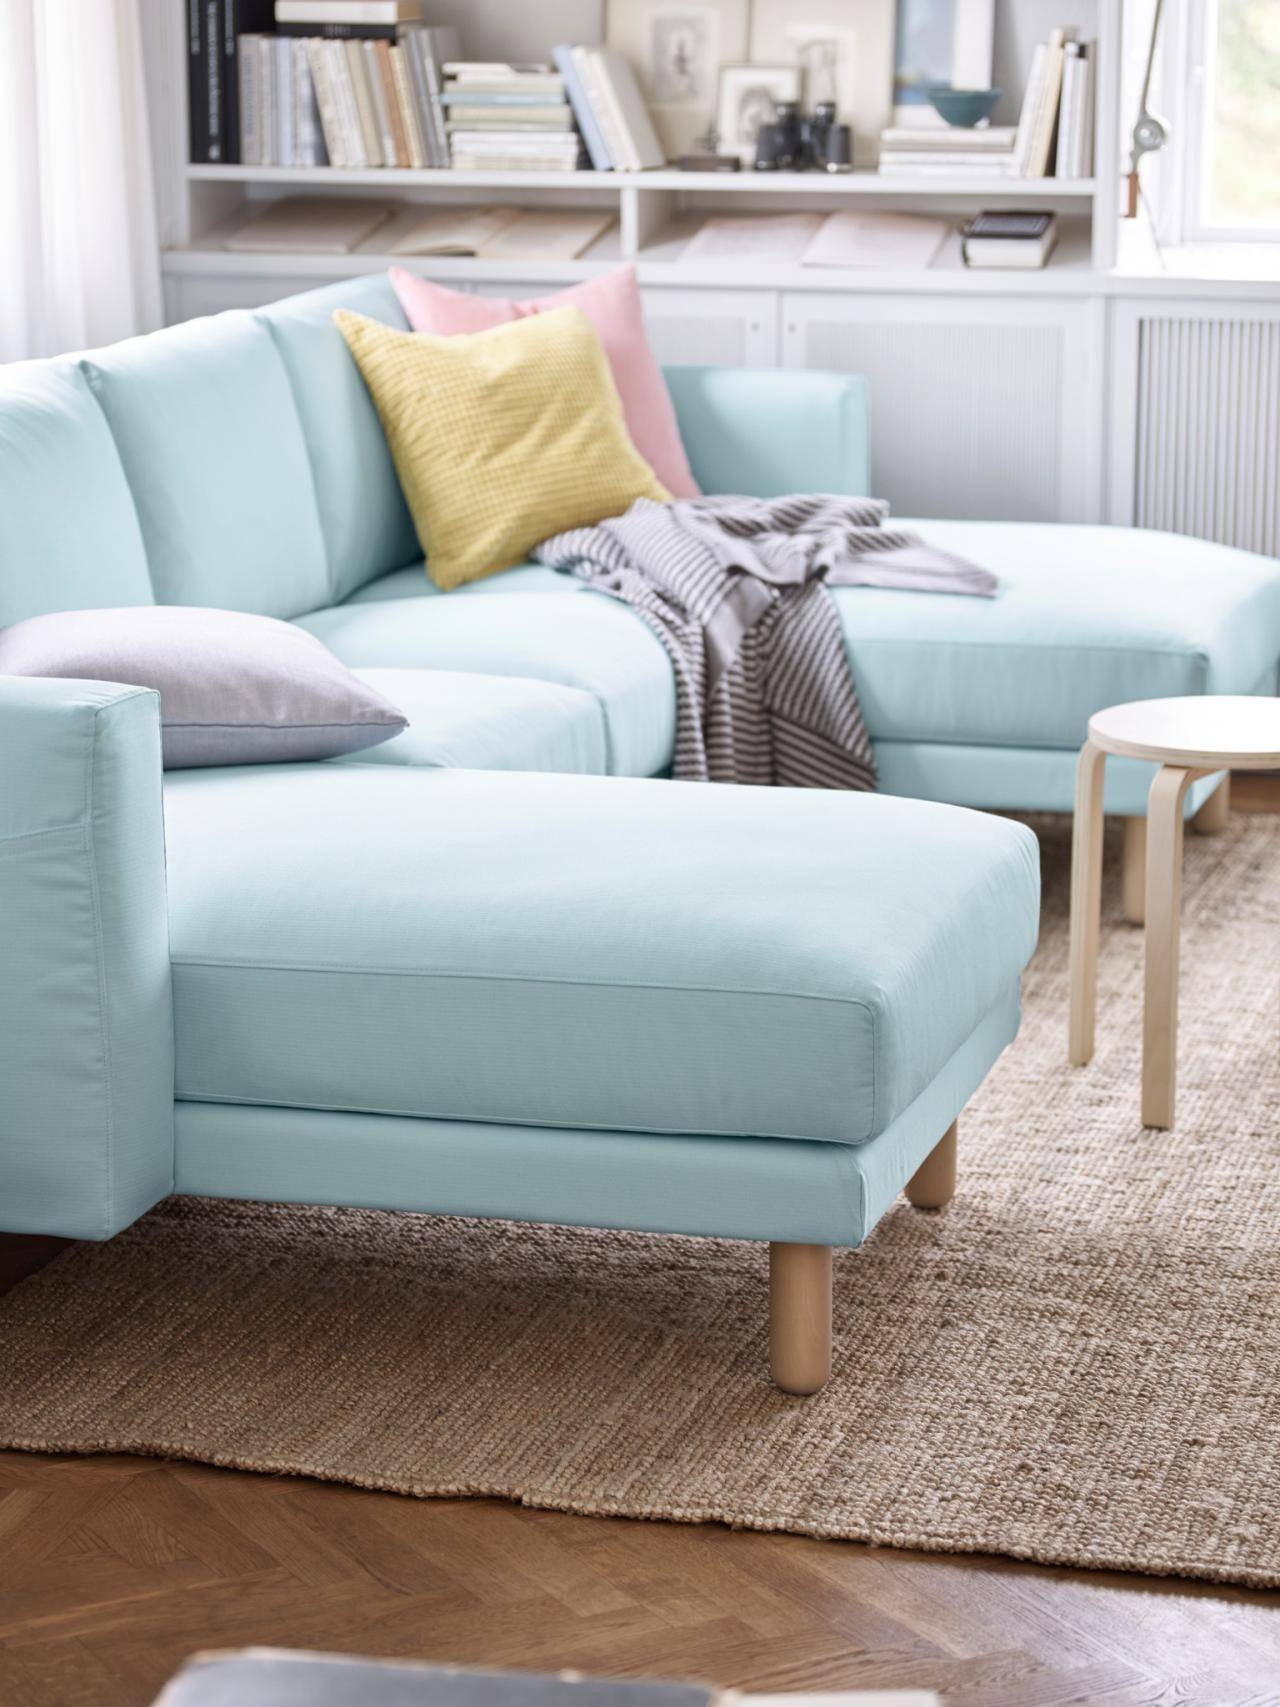 5 Apartment Sized Sofas That Are Lifesavers | Hgtv's Decorating pertaining to Small Lounge Sofas (Image 1 of 15)